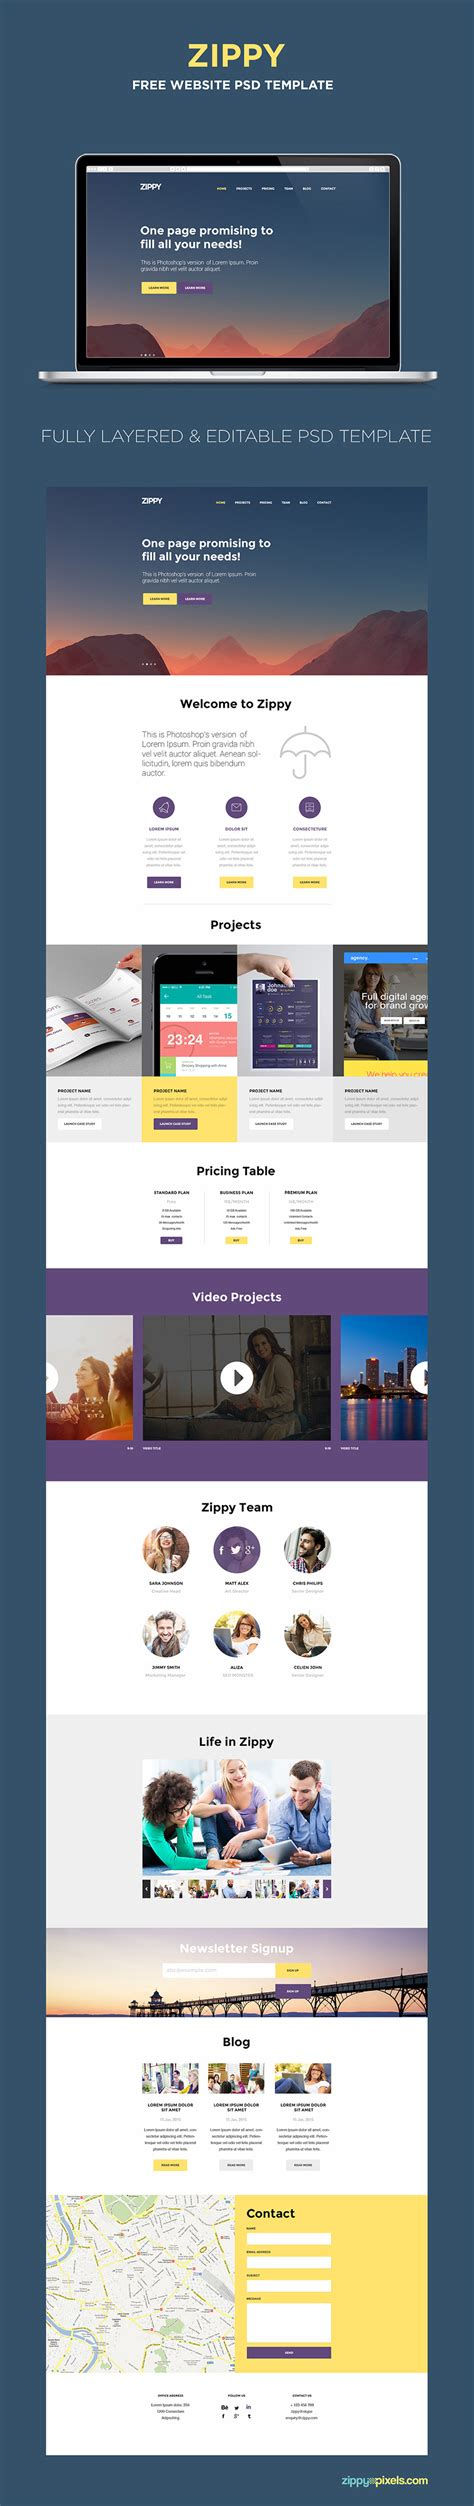 Free One Page Website Template Psd Zippypixels Single Page Website Template